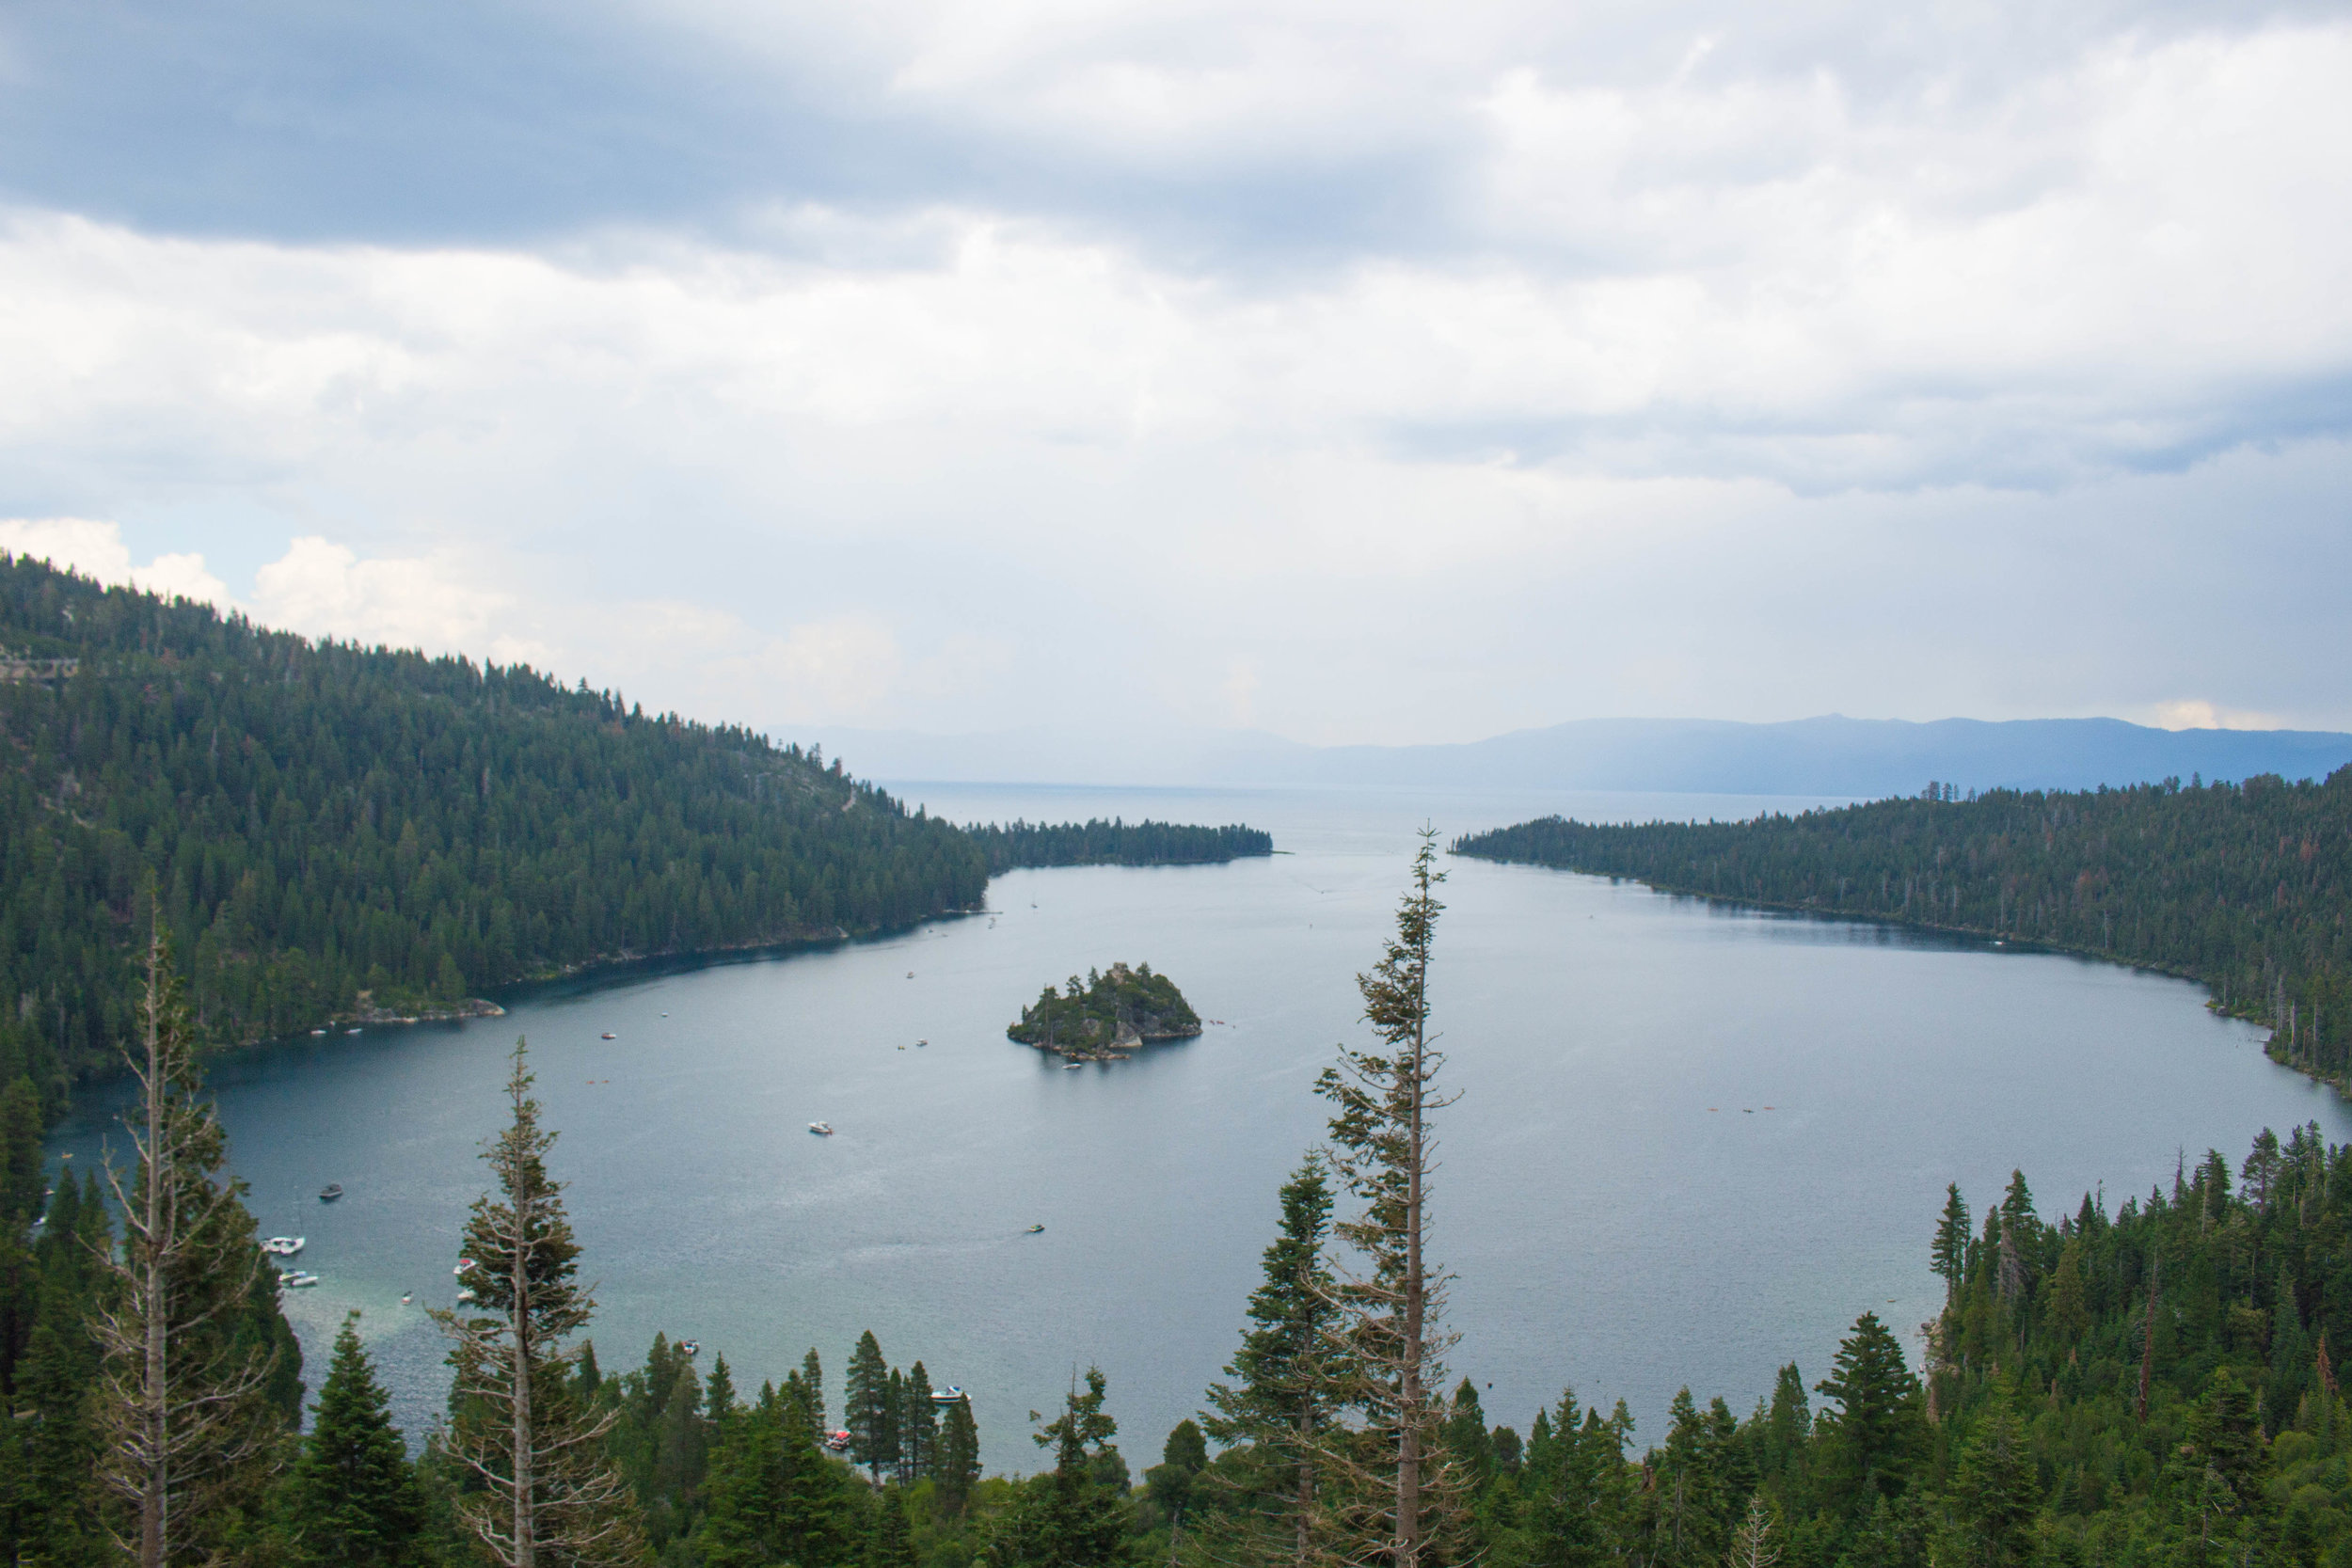 SUMMER TRAVEL GUIDE TO SOUTH LAKE TAHOE - EMERALD BAY